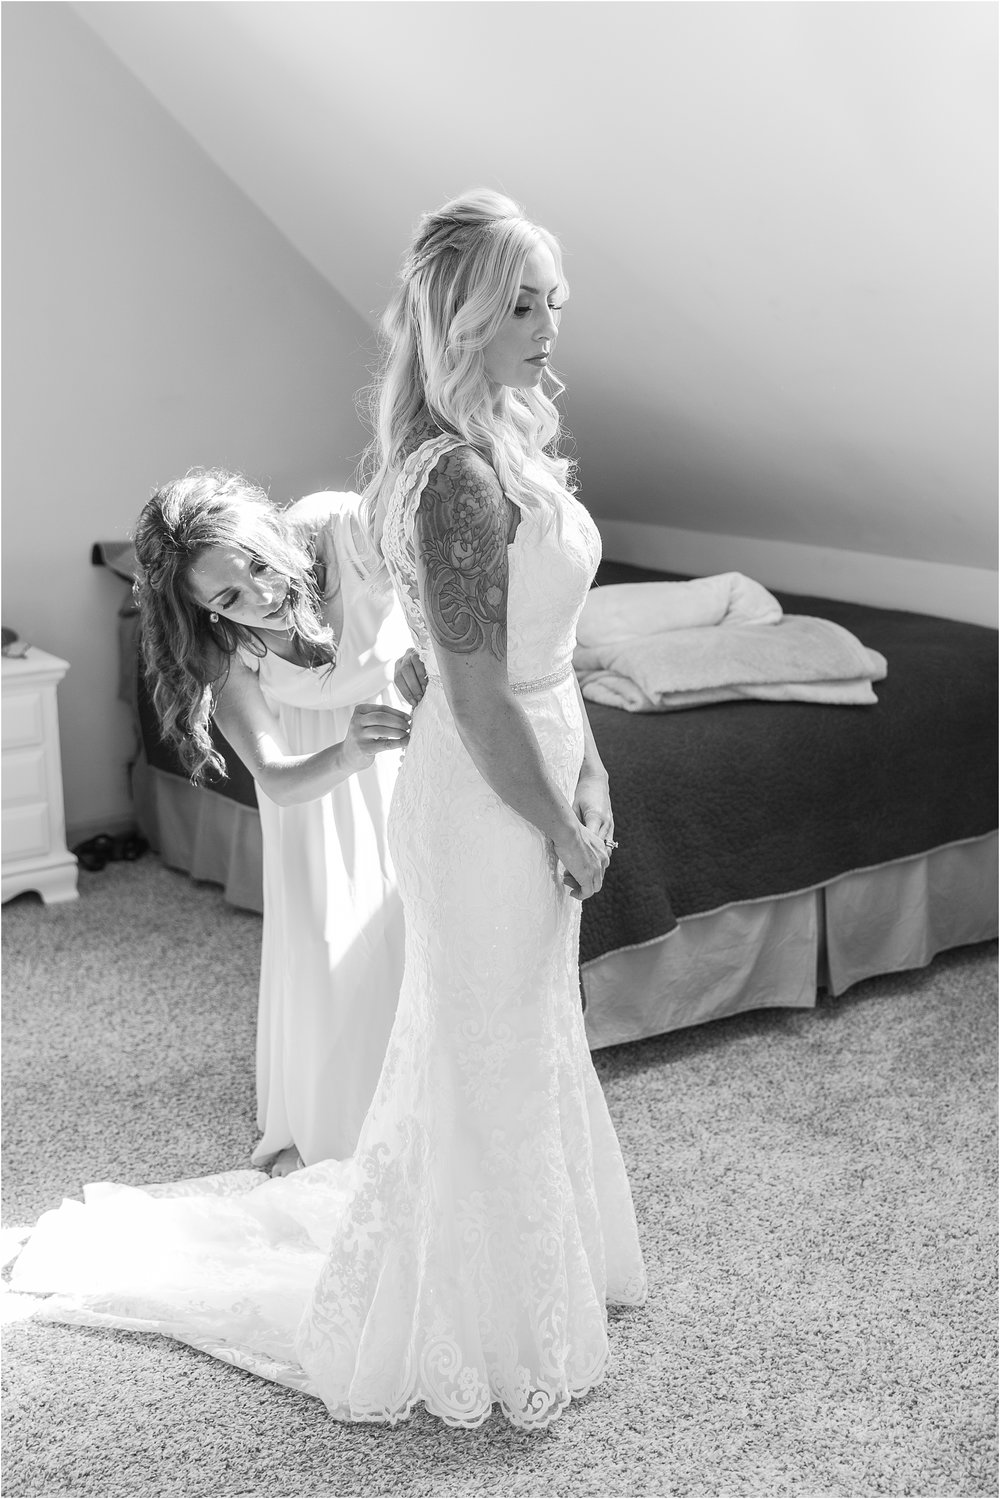 fun-whimsical-beach-wedding-photos-in-st-joseph-michigan-by-courtney-carolyn-photography_0010.jpg